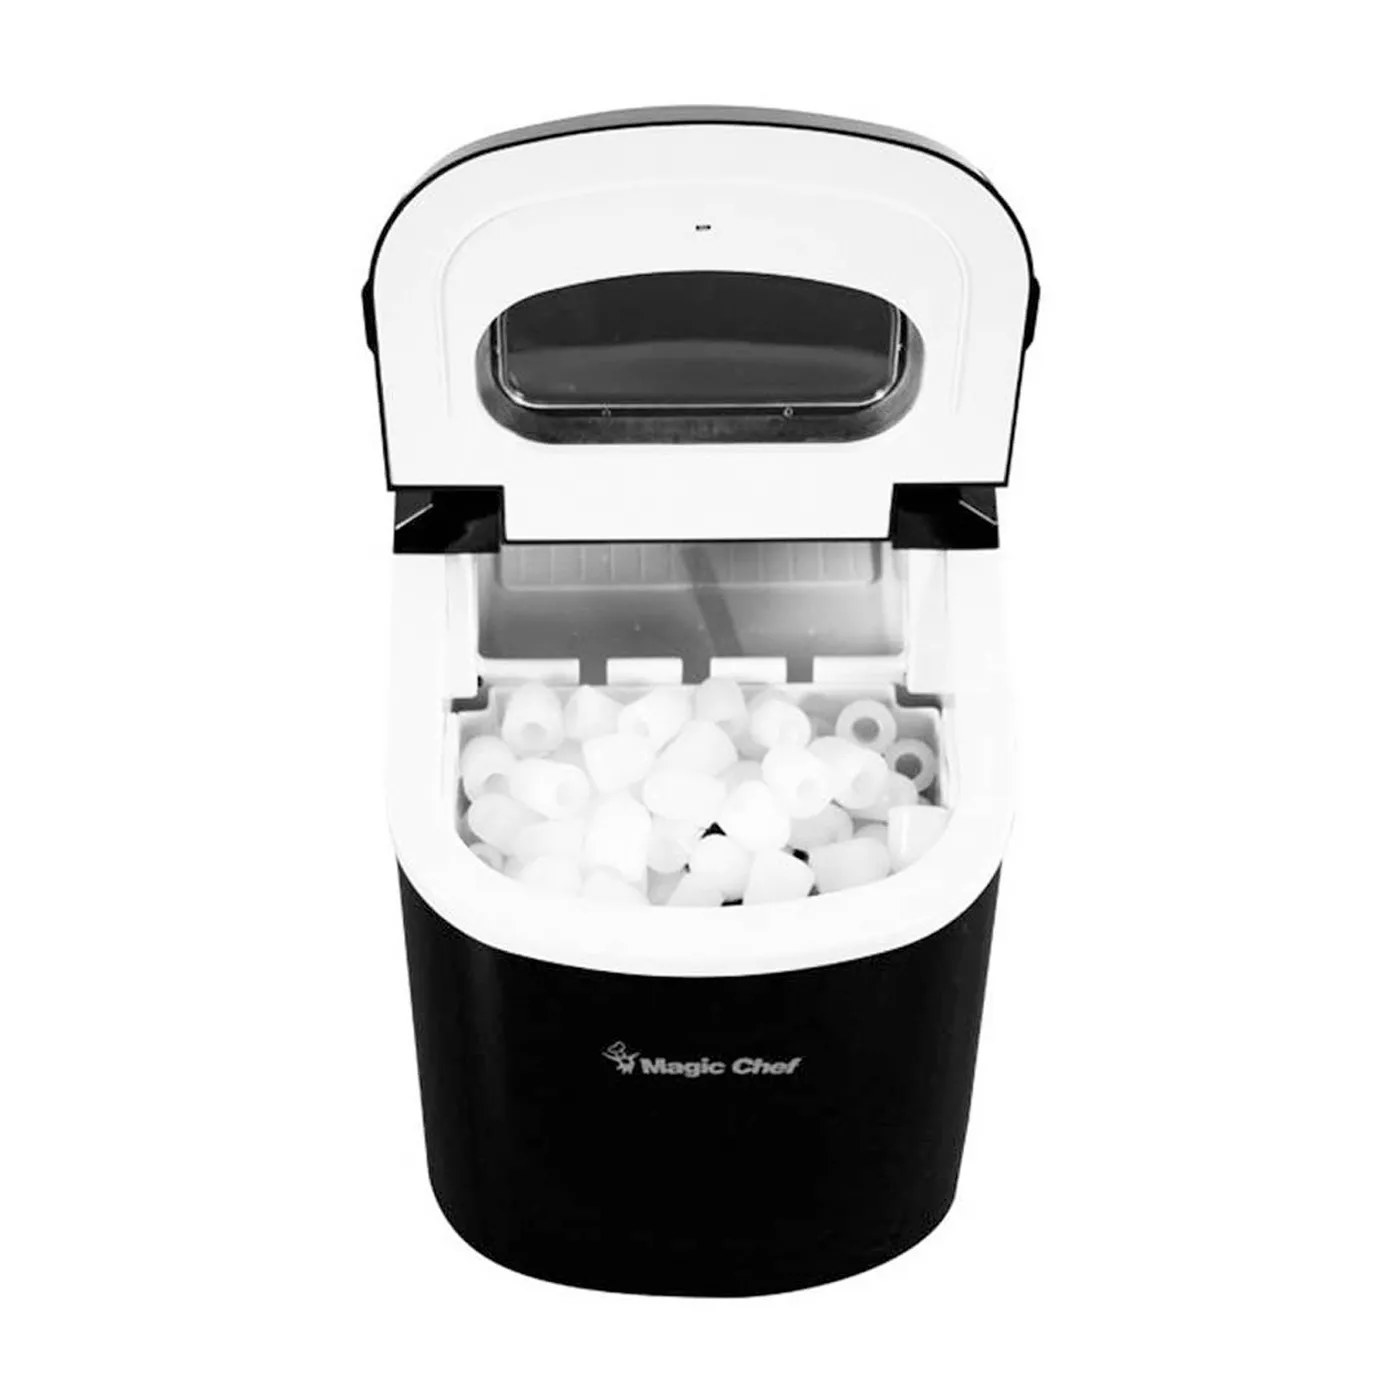 The black Magic Chef ice maker full of ice